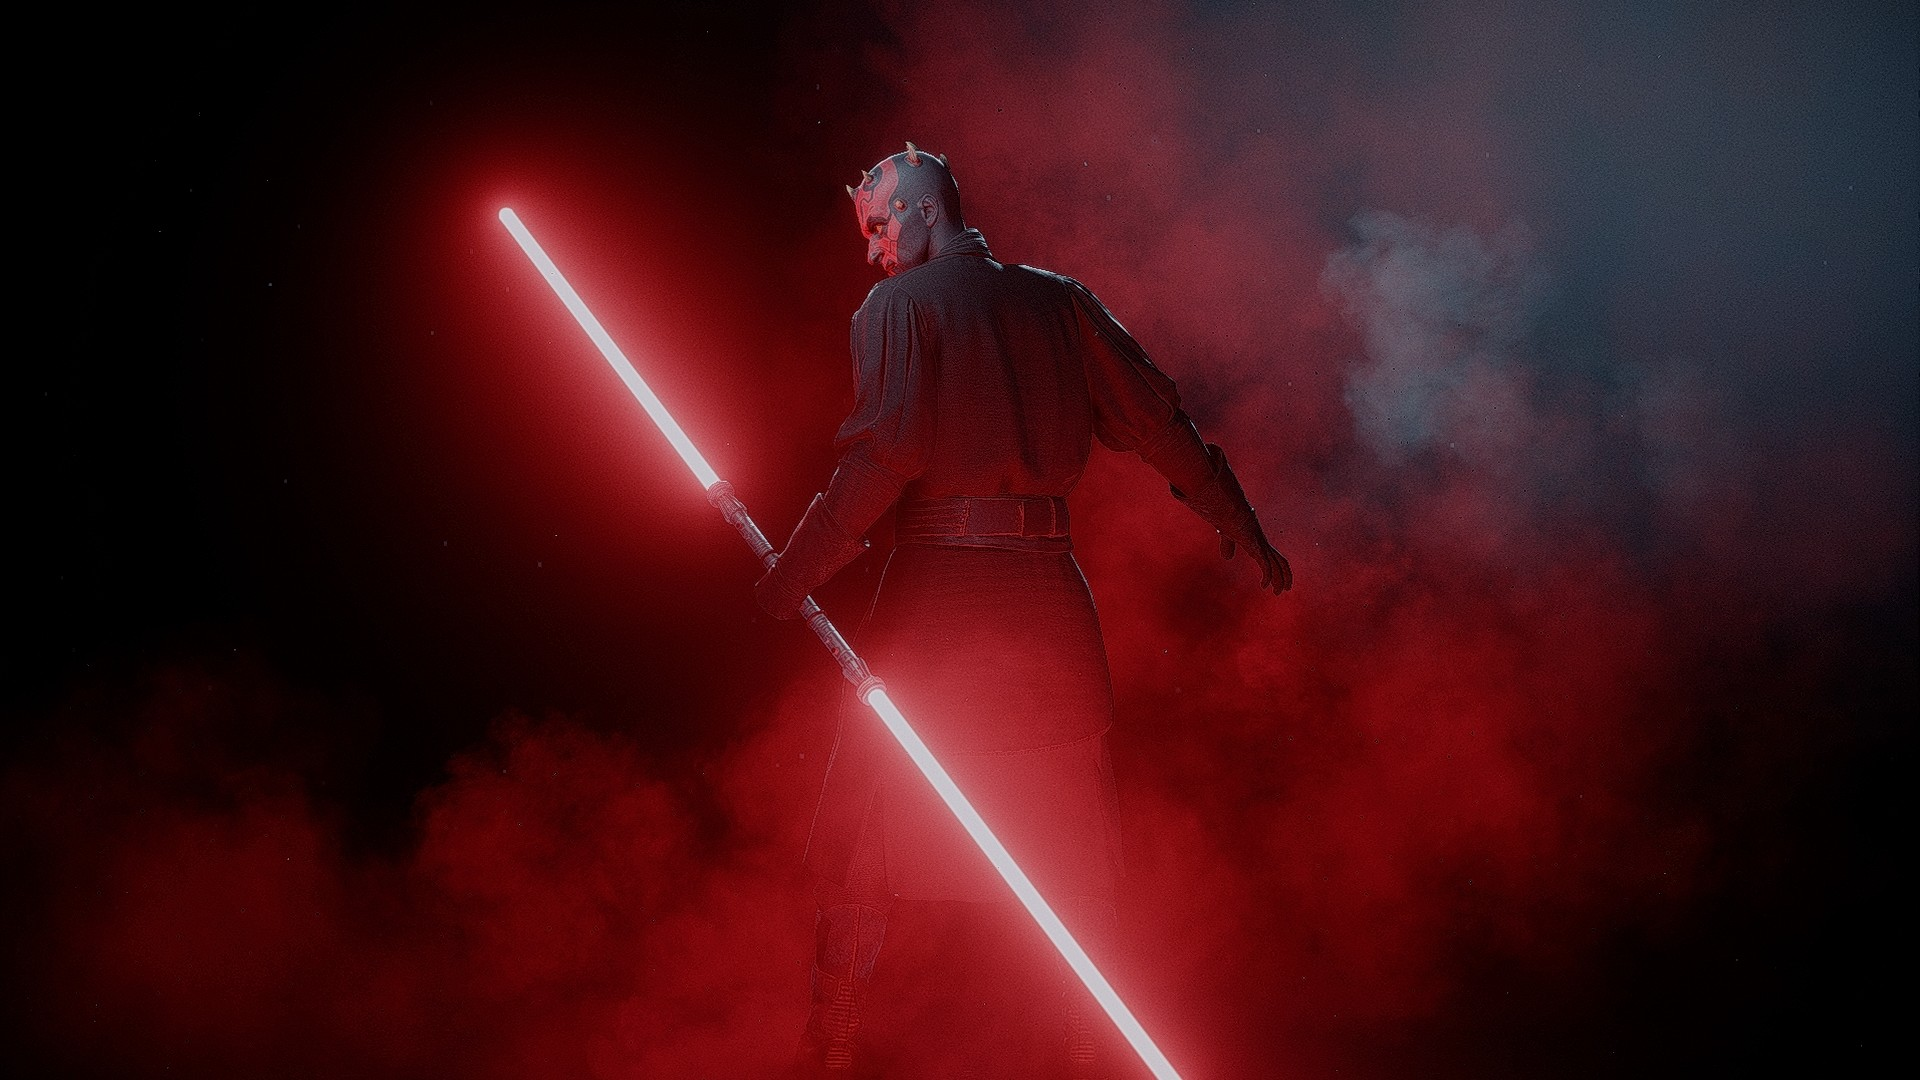 Darth Maul Free Wallpaper and Background